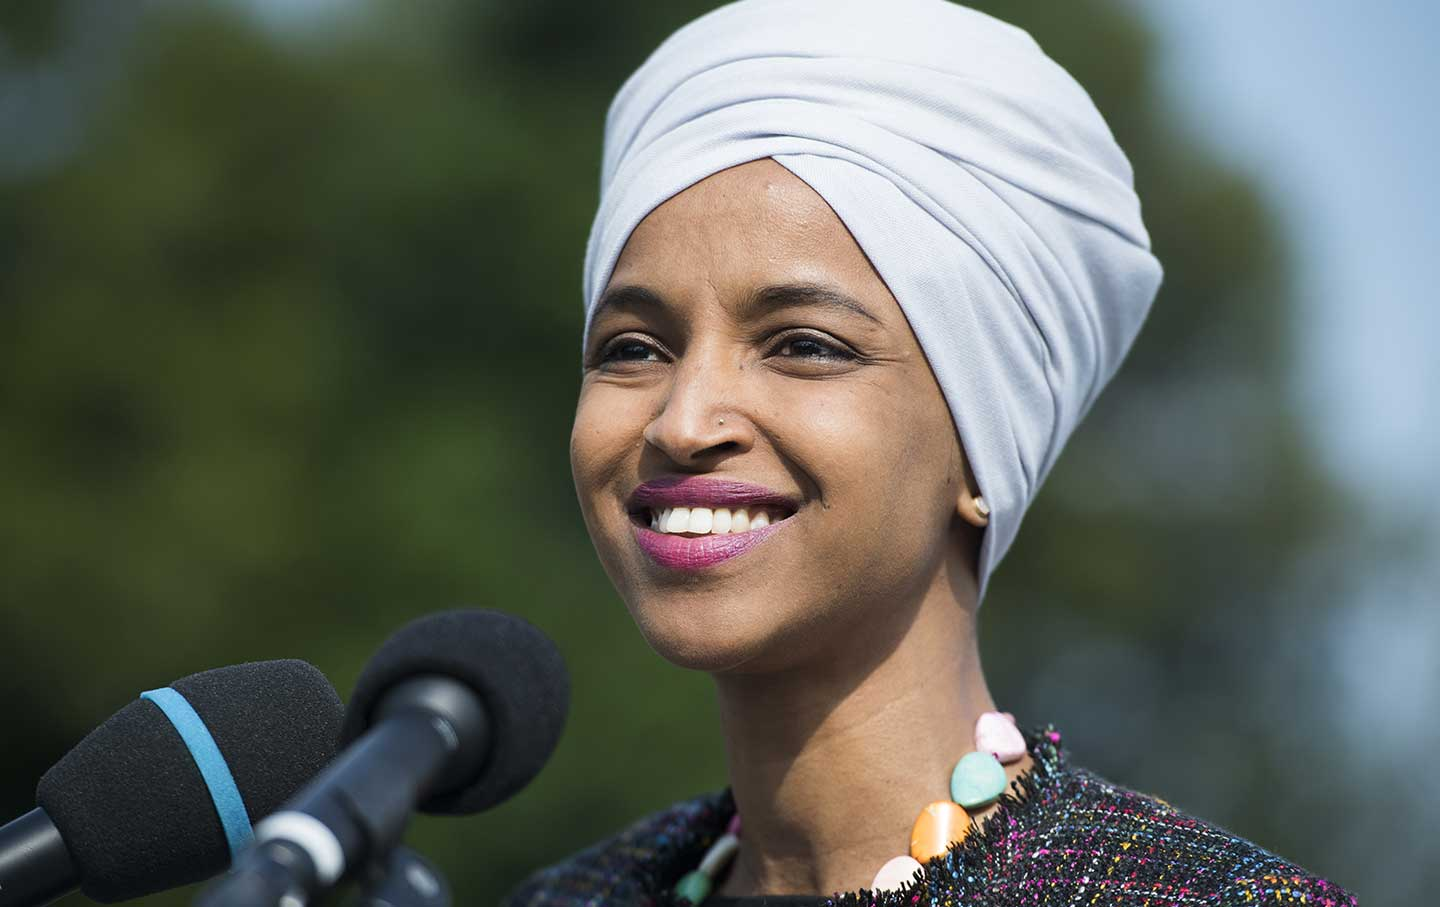 what did ilhan omar